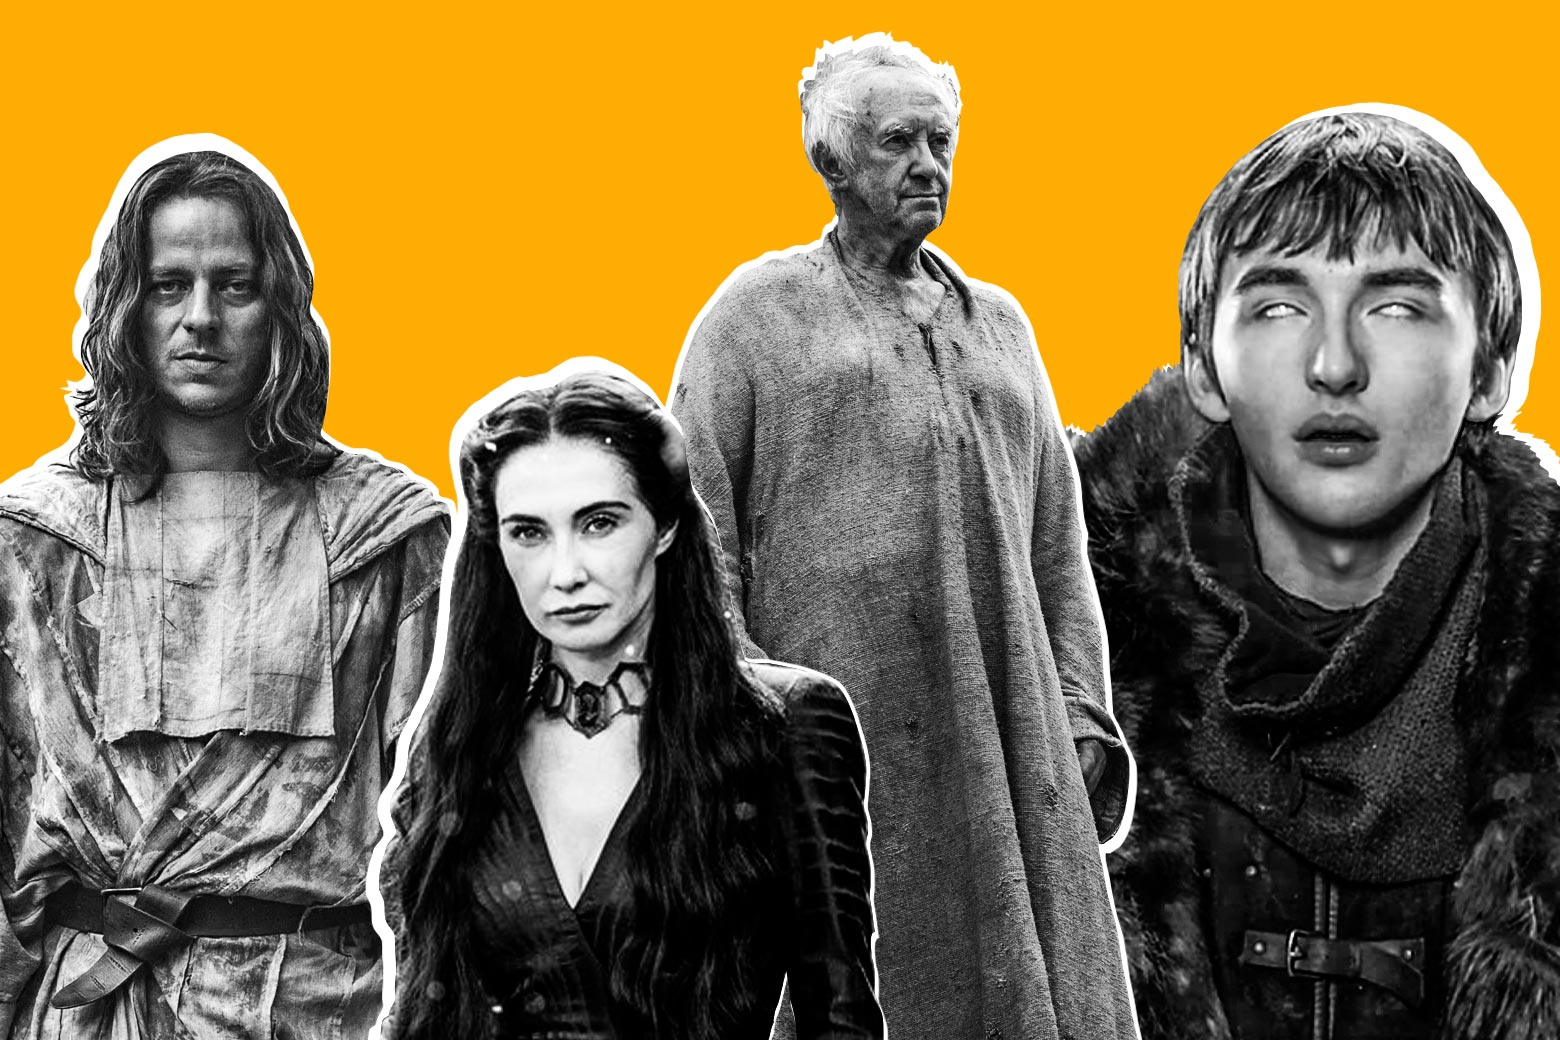 Jaqen H'ghar, Melisandre, the High Sparrow, and Bran Stark.